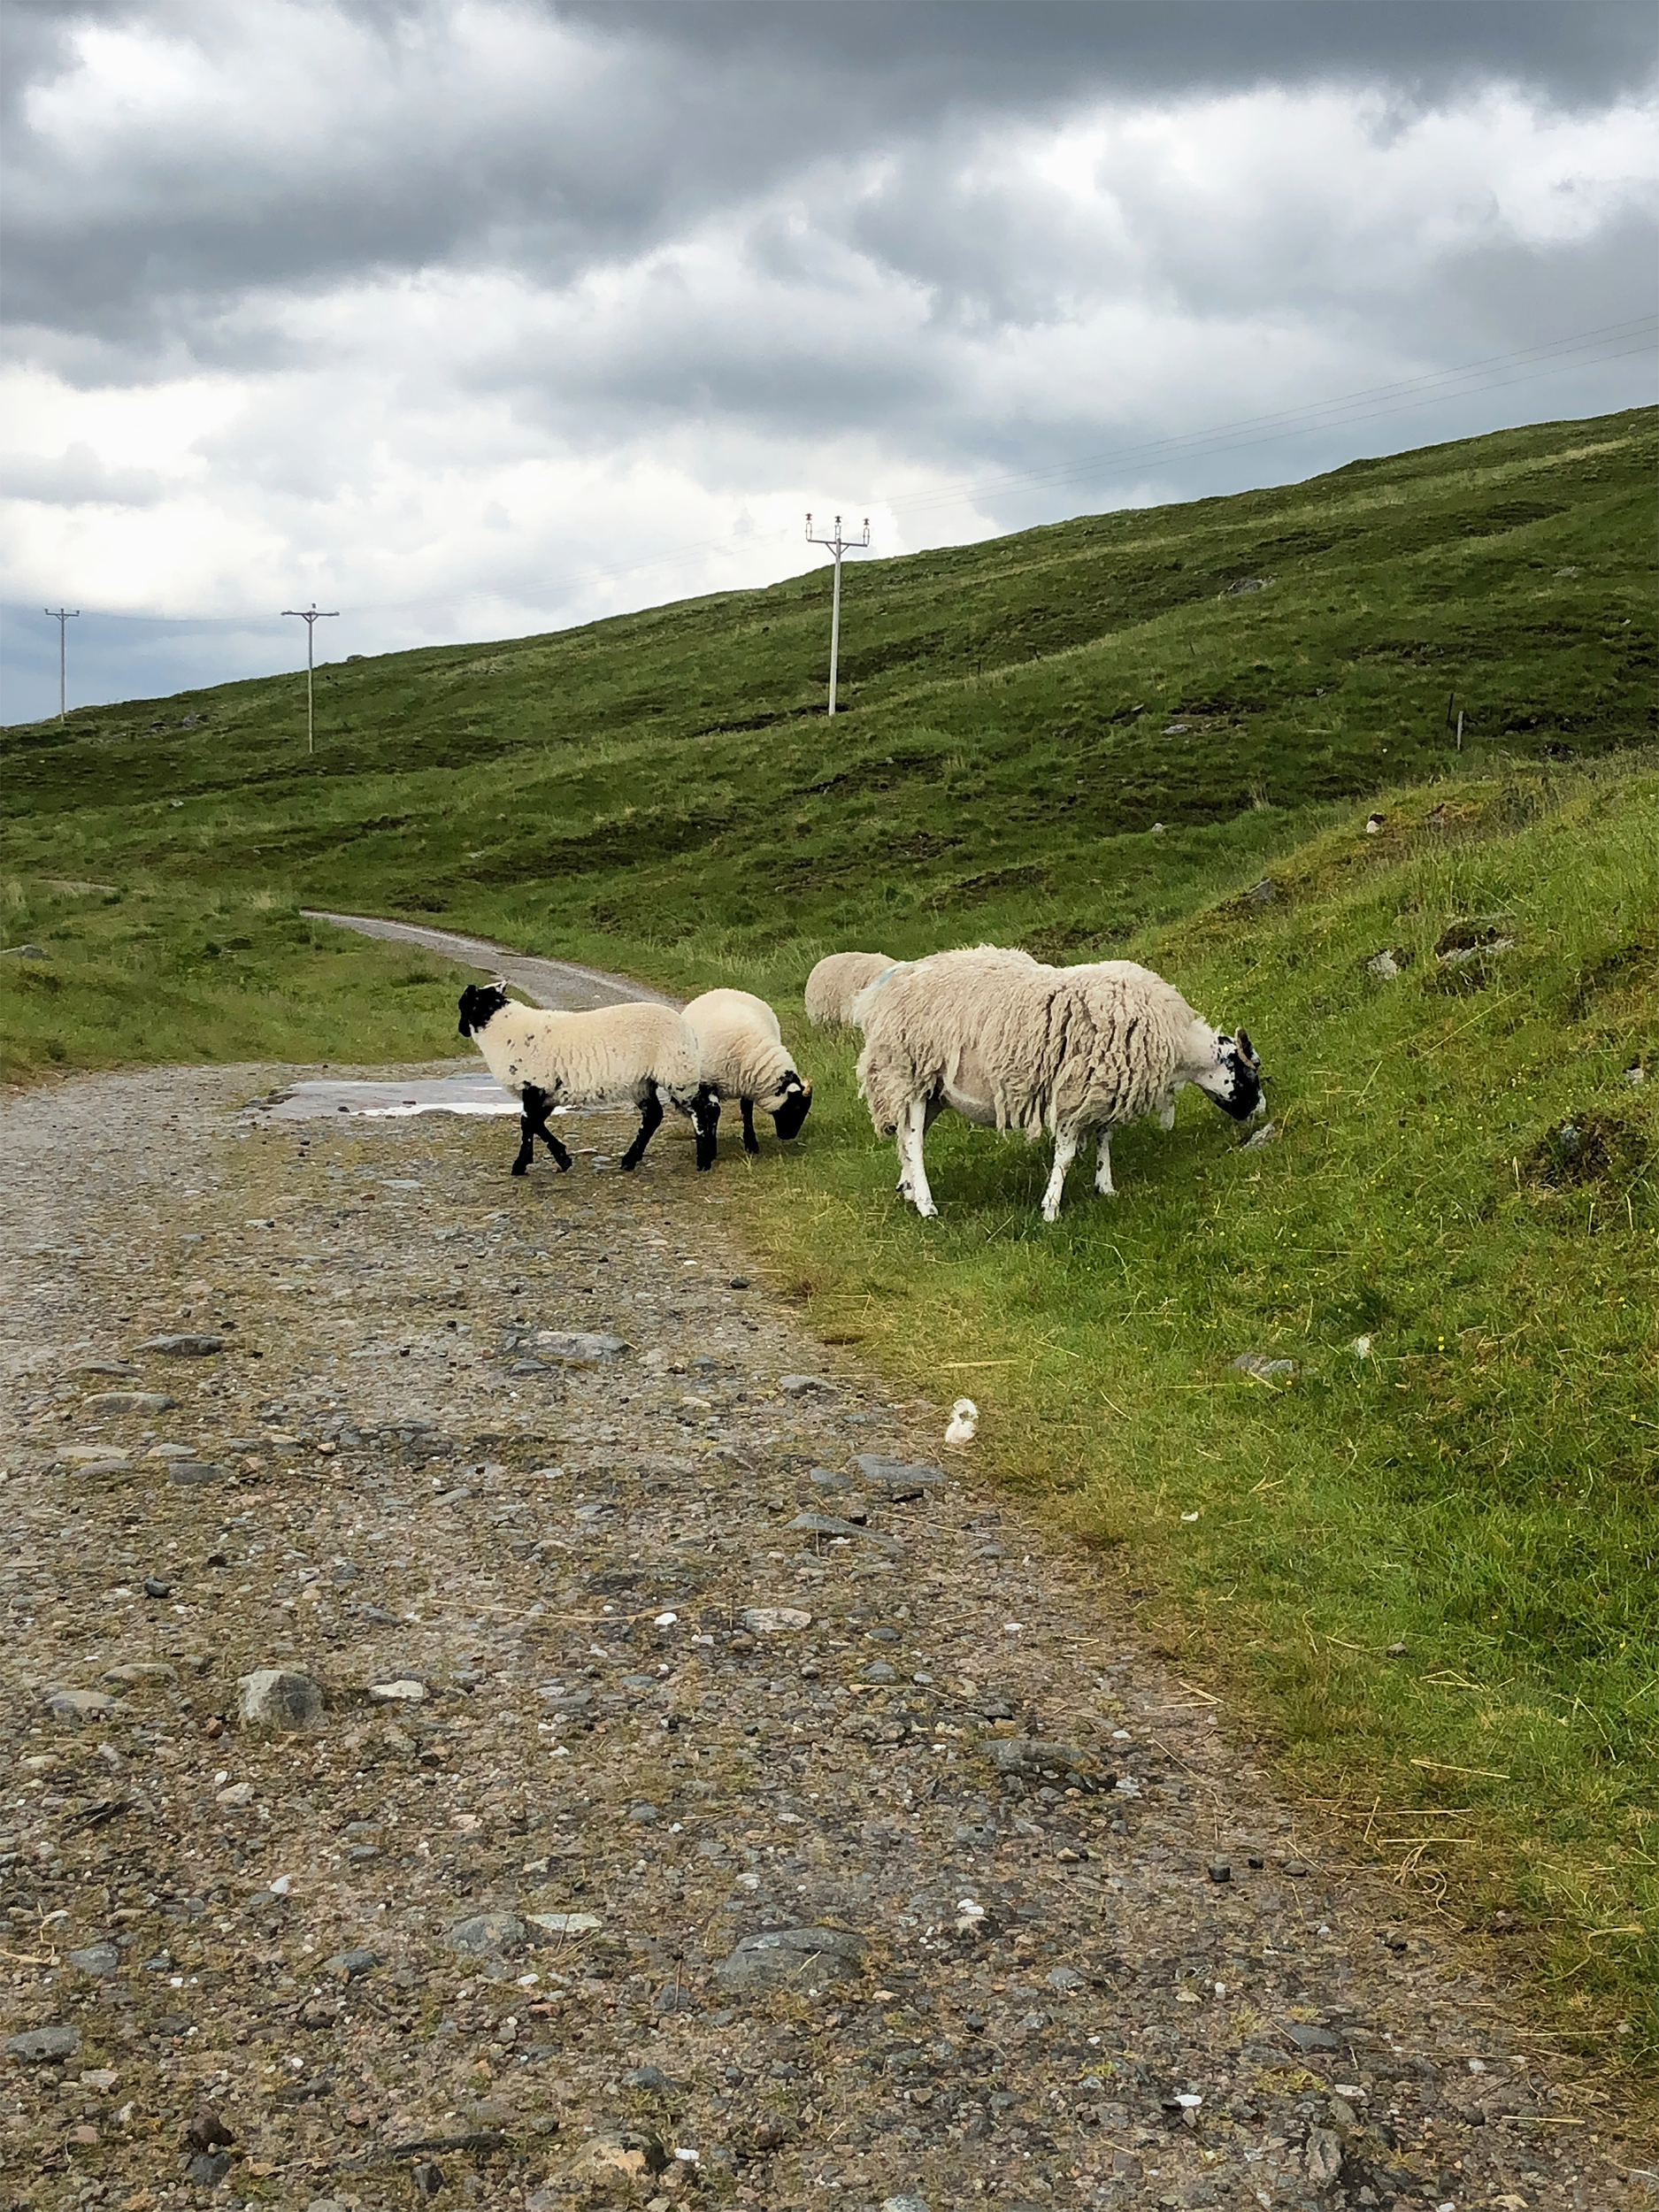 Scotland is full of sheep, we saw so many as you are sometimes walking through local farmers land.